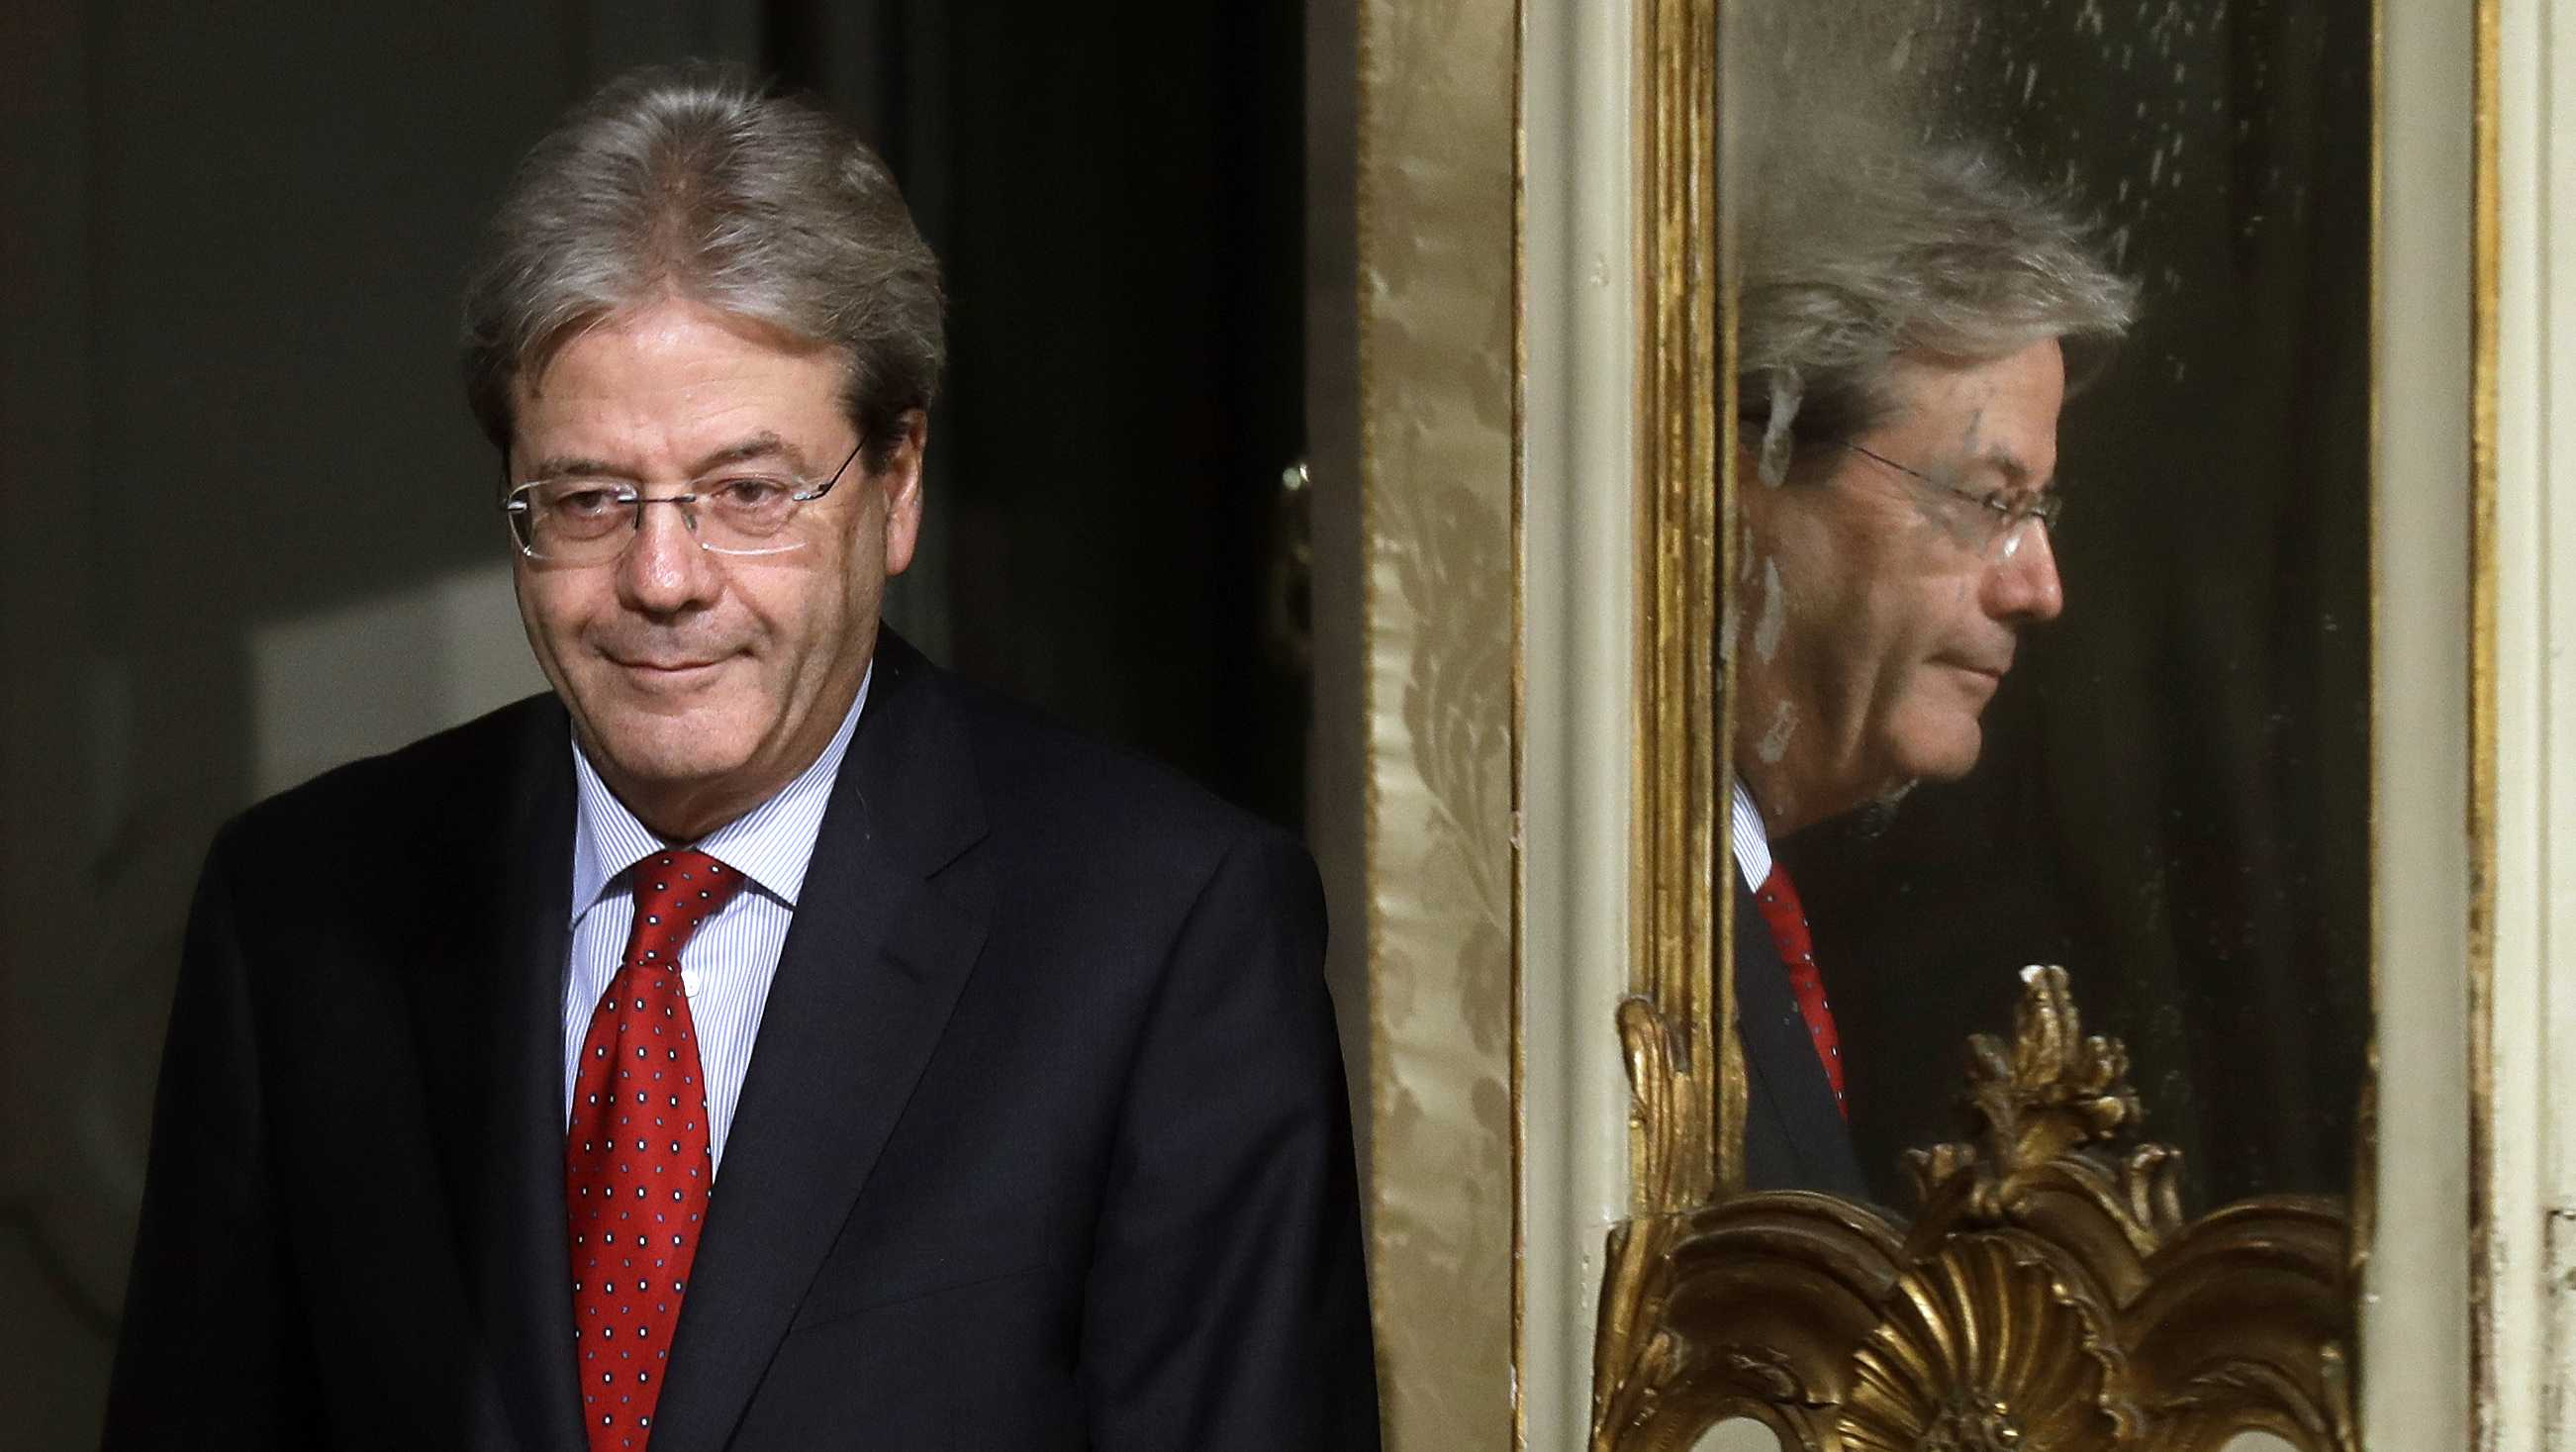 Italian Premier Paolo Gentiloni is mirrored at right as he arrives with Colombian President Juan Manuel Santos to give a press conference following their meeting at Chigi Palace, in Rome, Friday, Dec. 16, 2016.